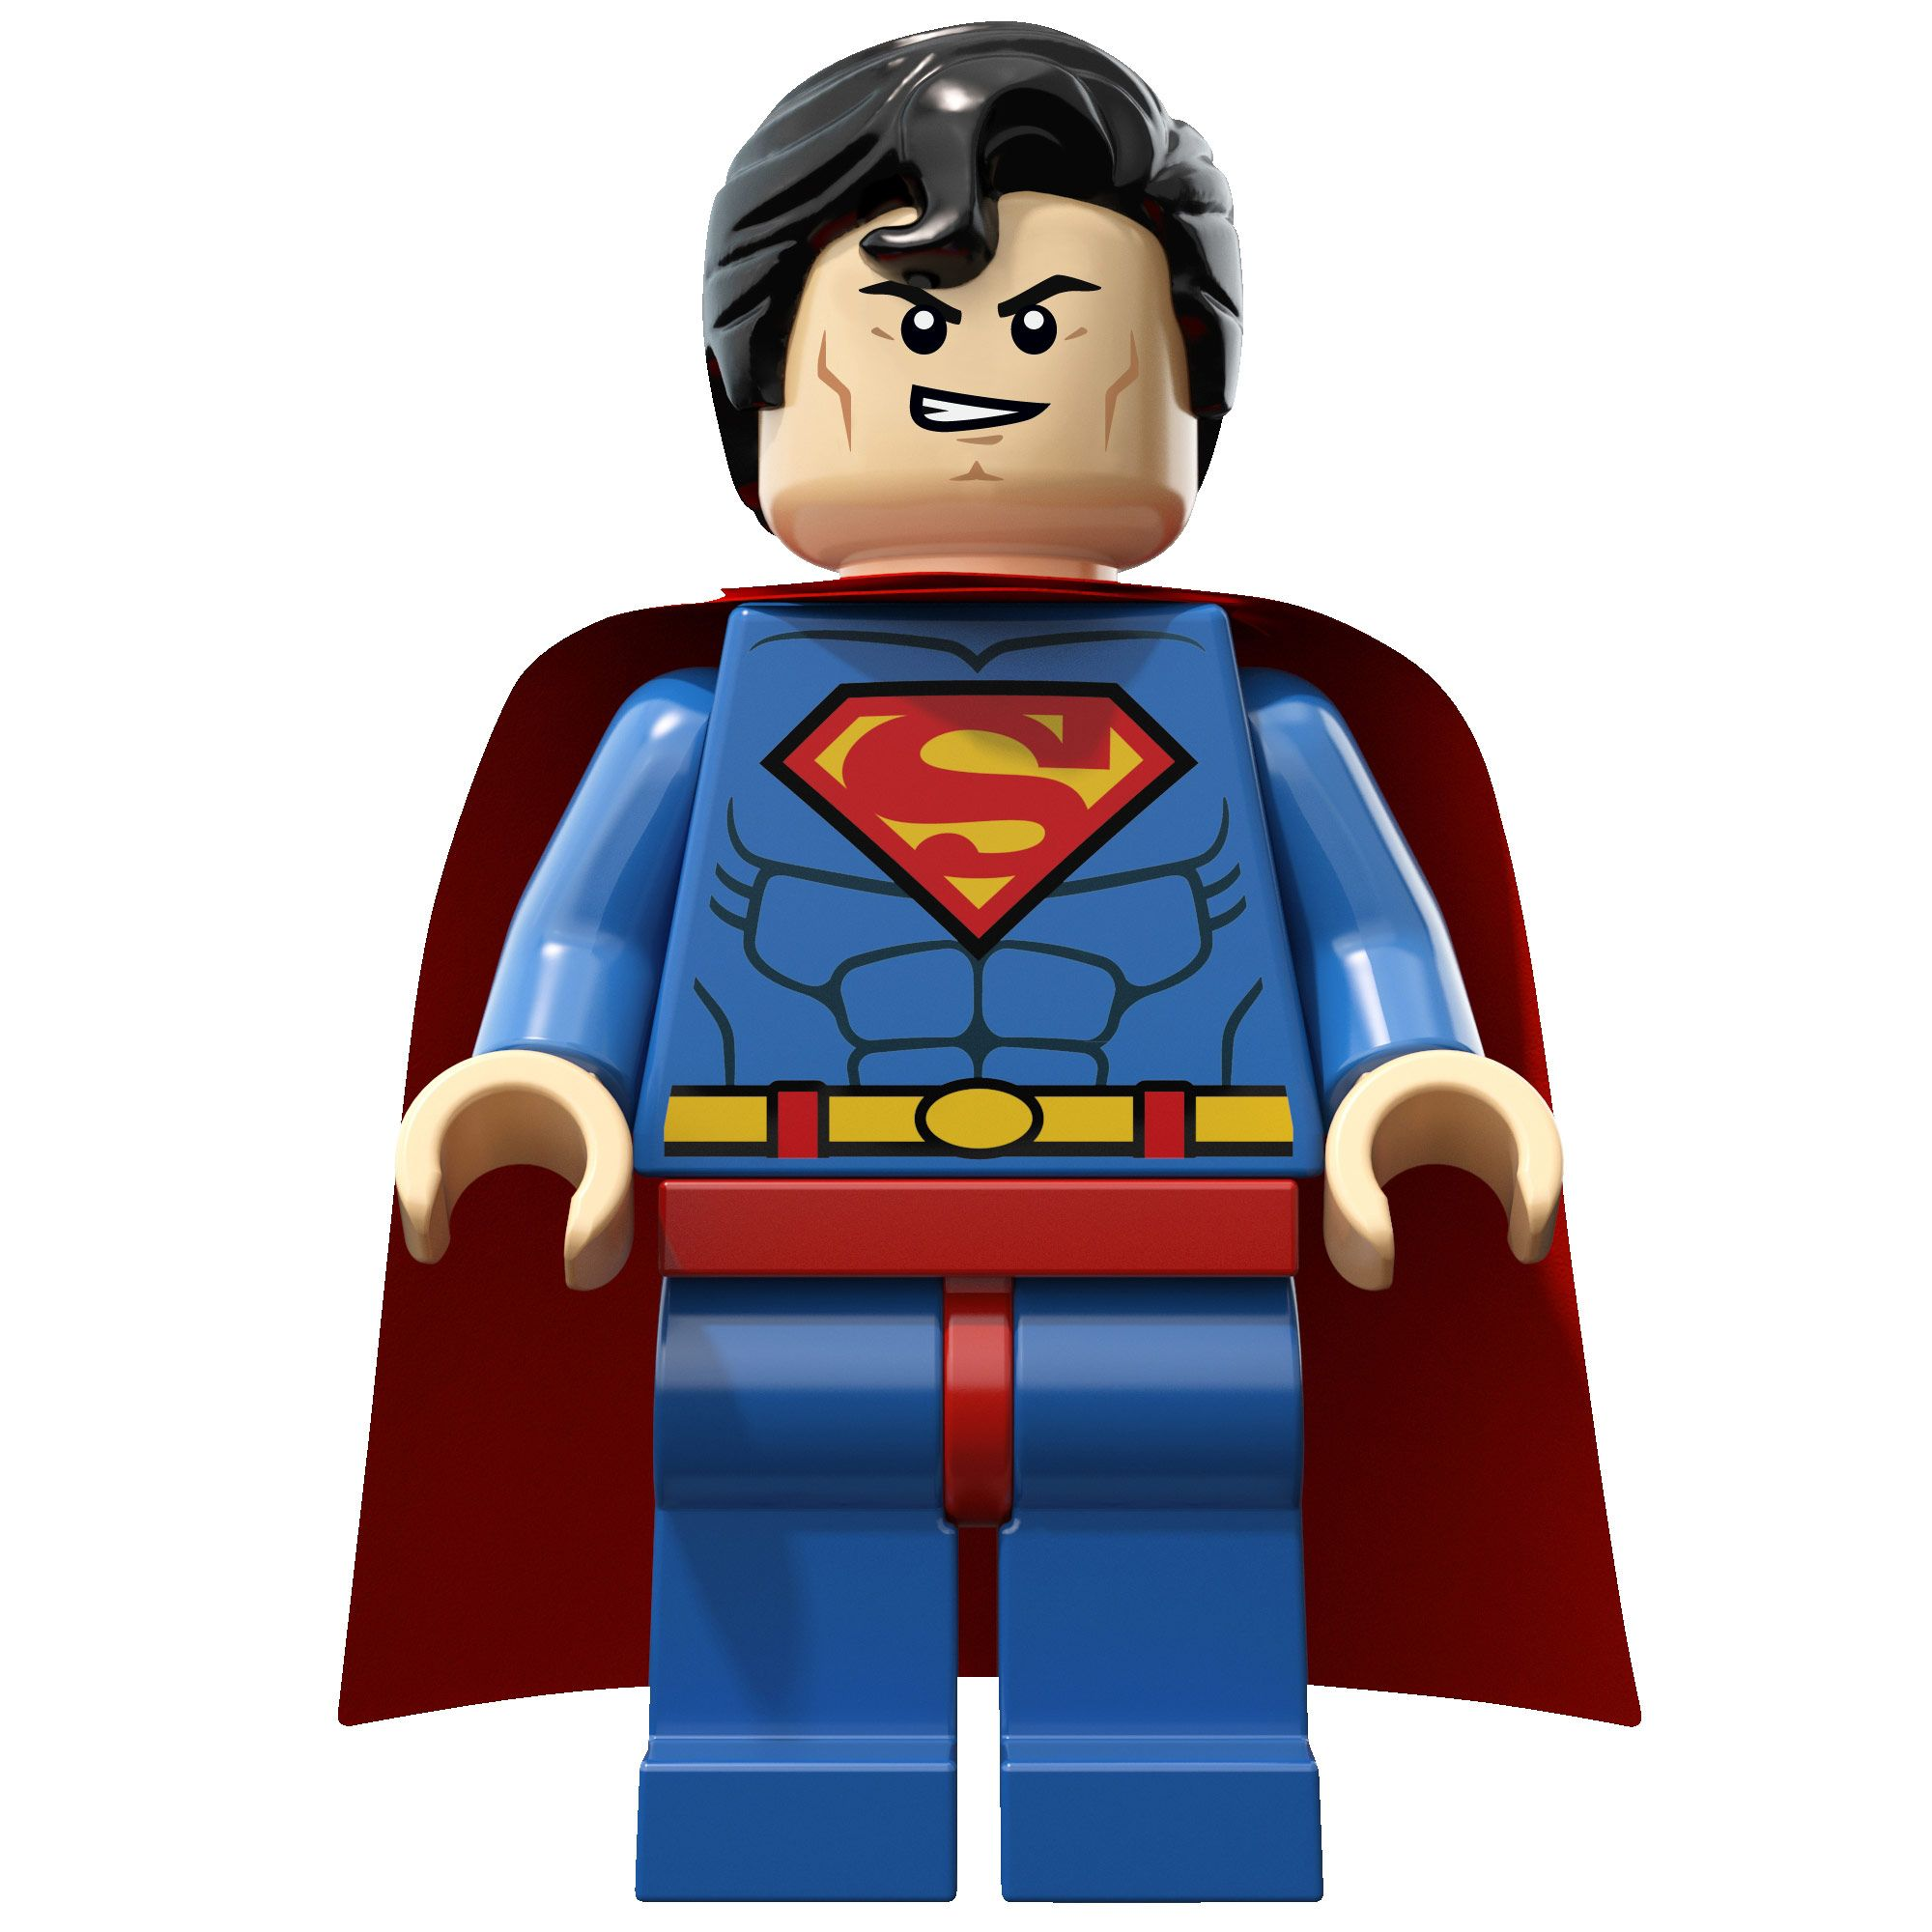 superman - Cerca amb Google | fiesta lego super eroe | Pinterest ...